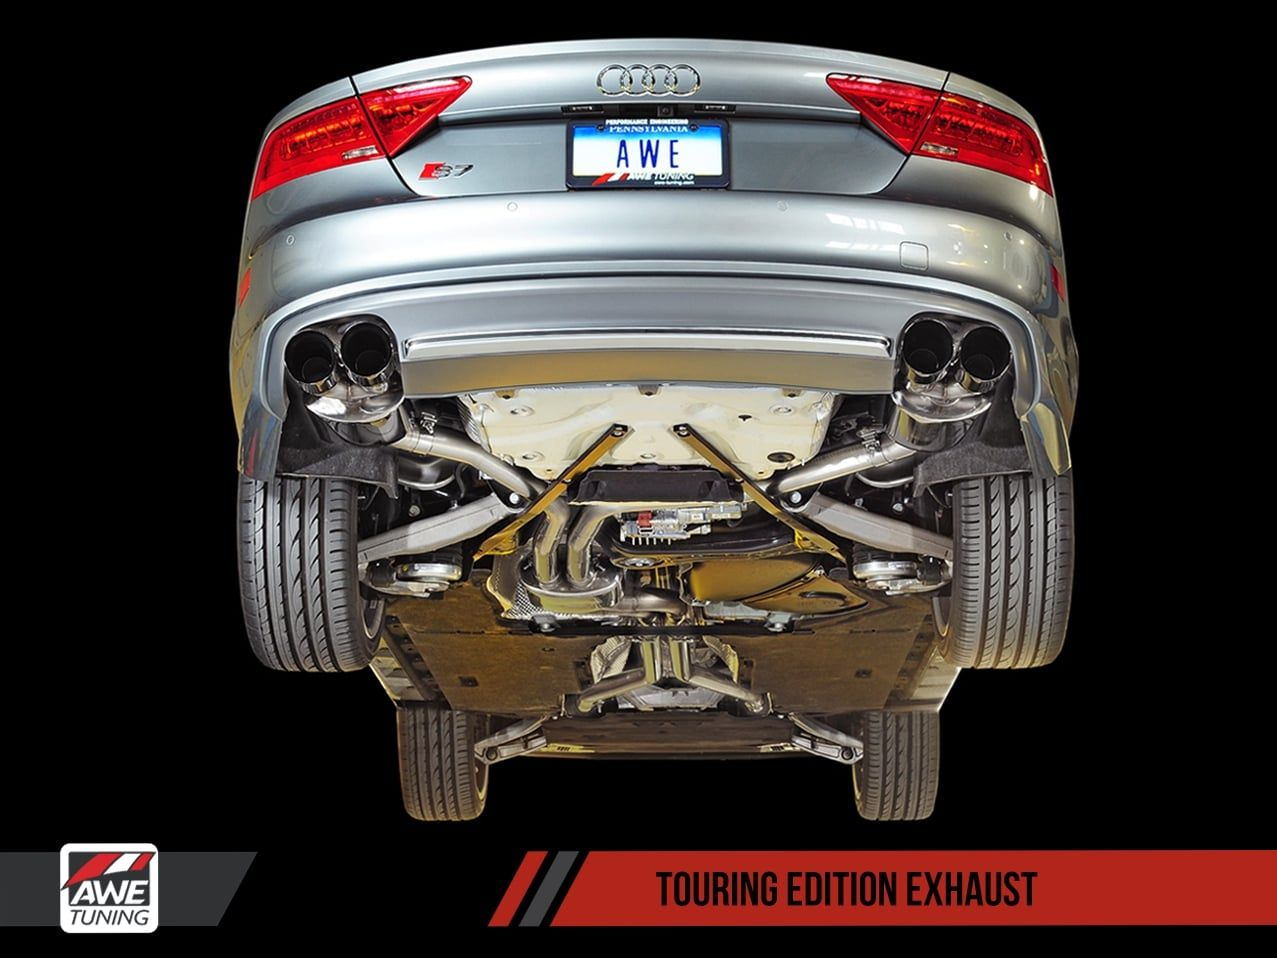 audi S7 exhaust awe tuning touring exhaust